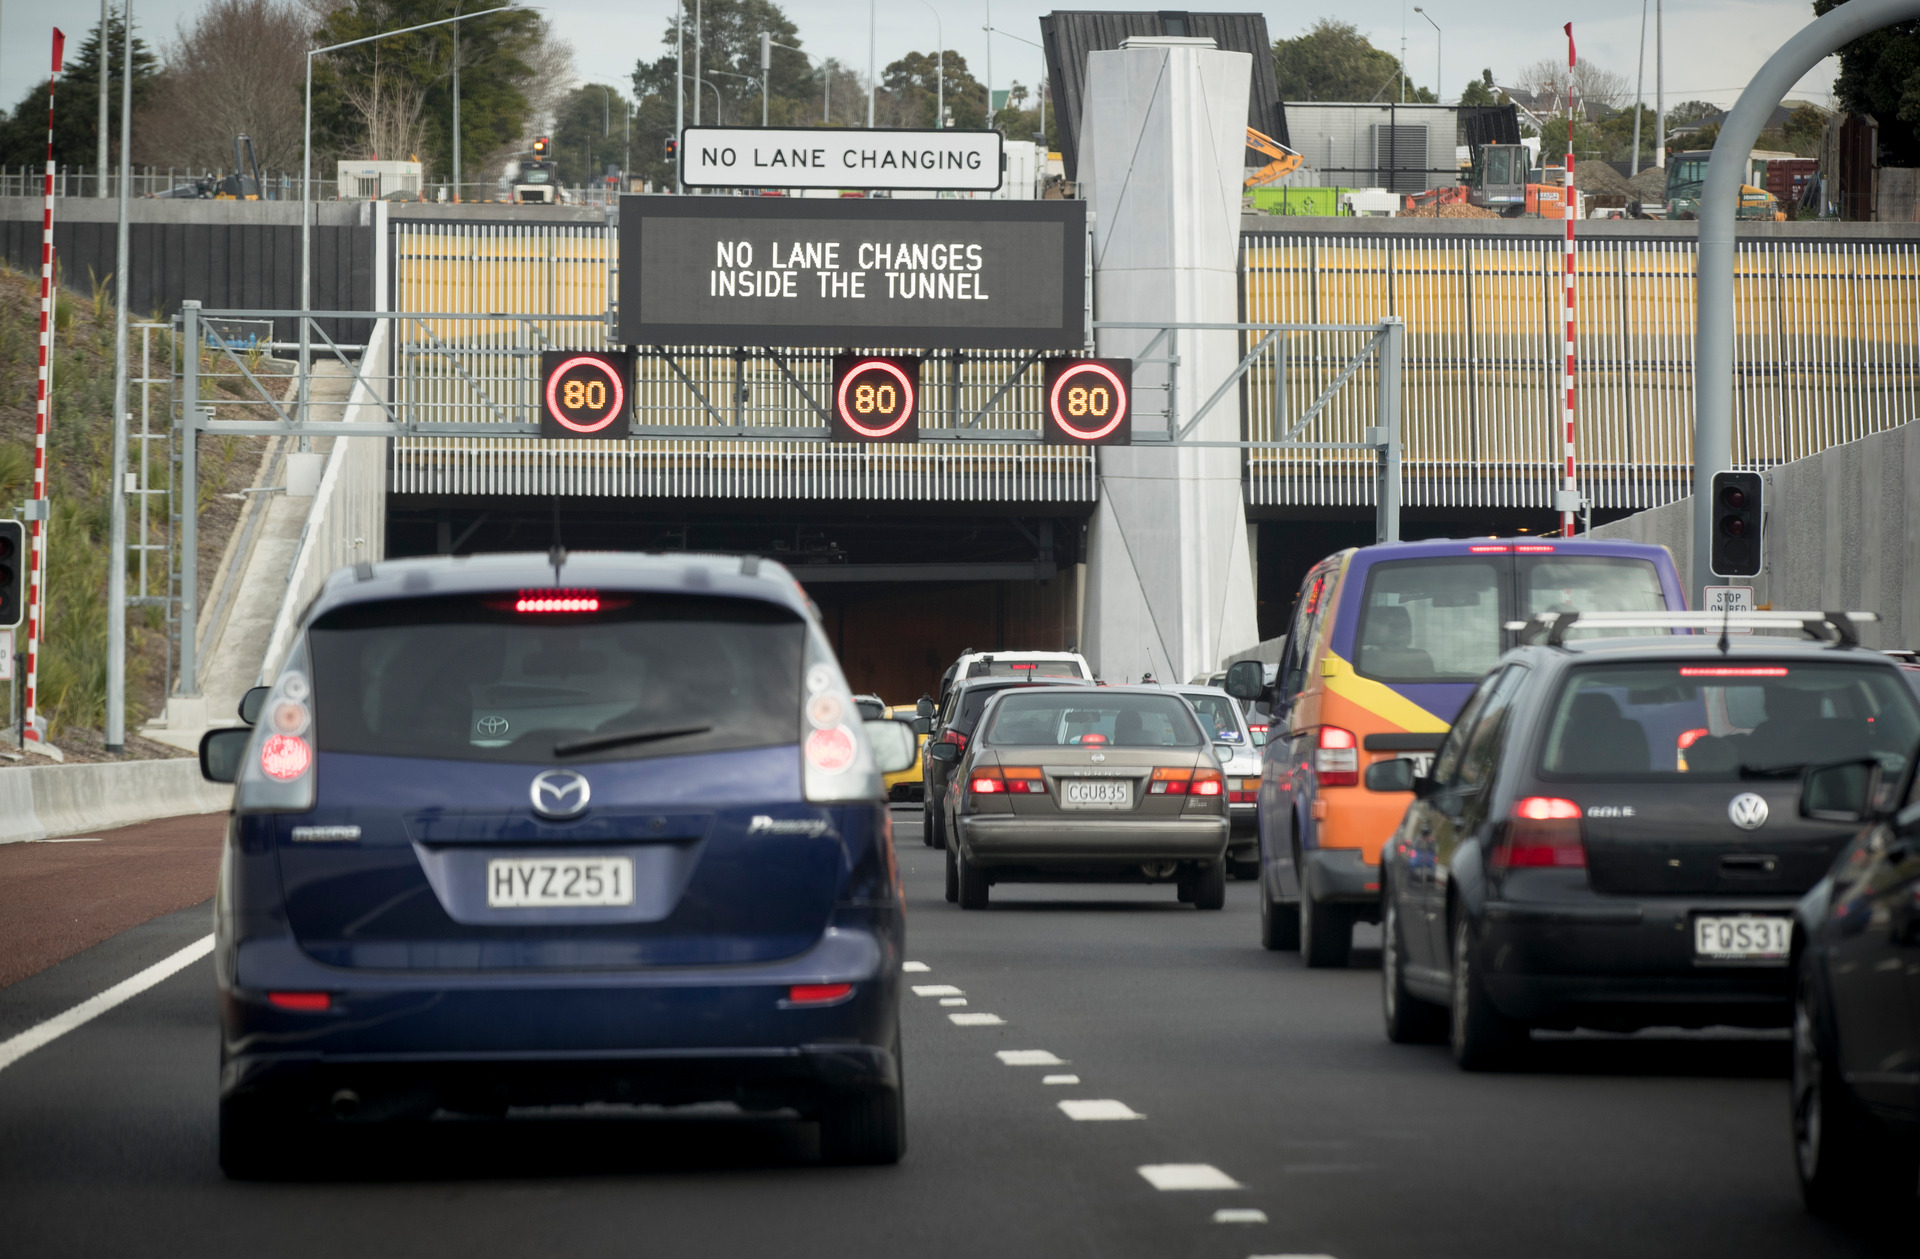 Delays heading into city from airport as overheight truck blocks Waterview Tunnel